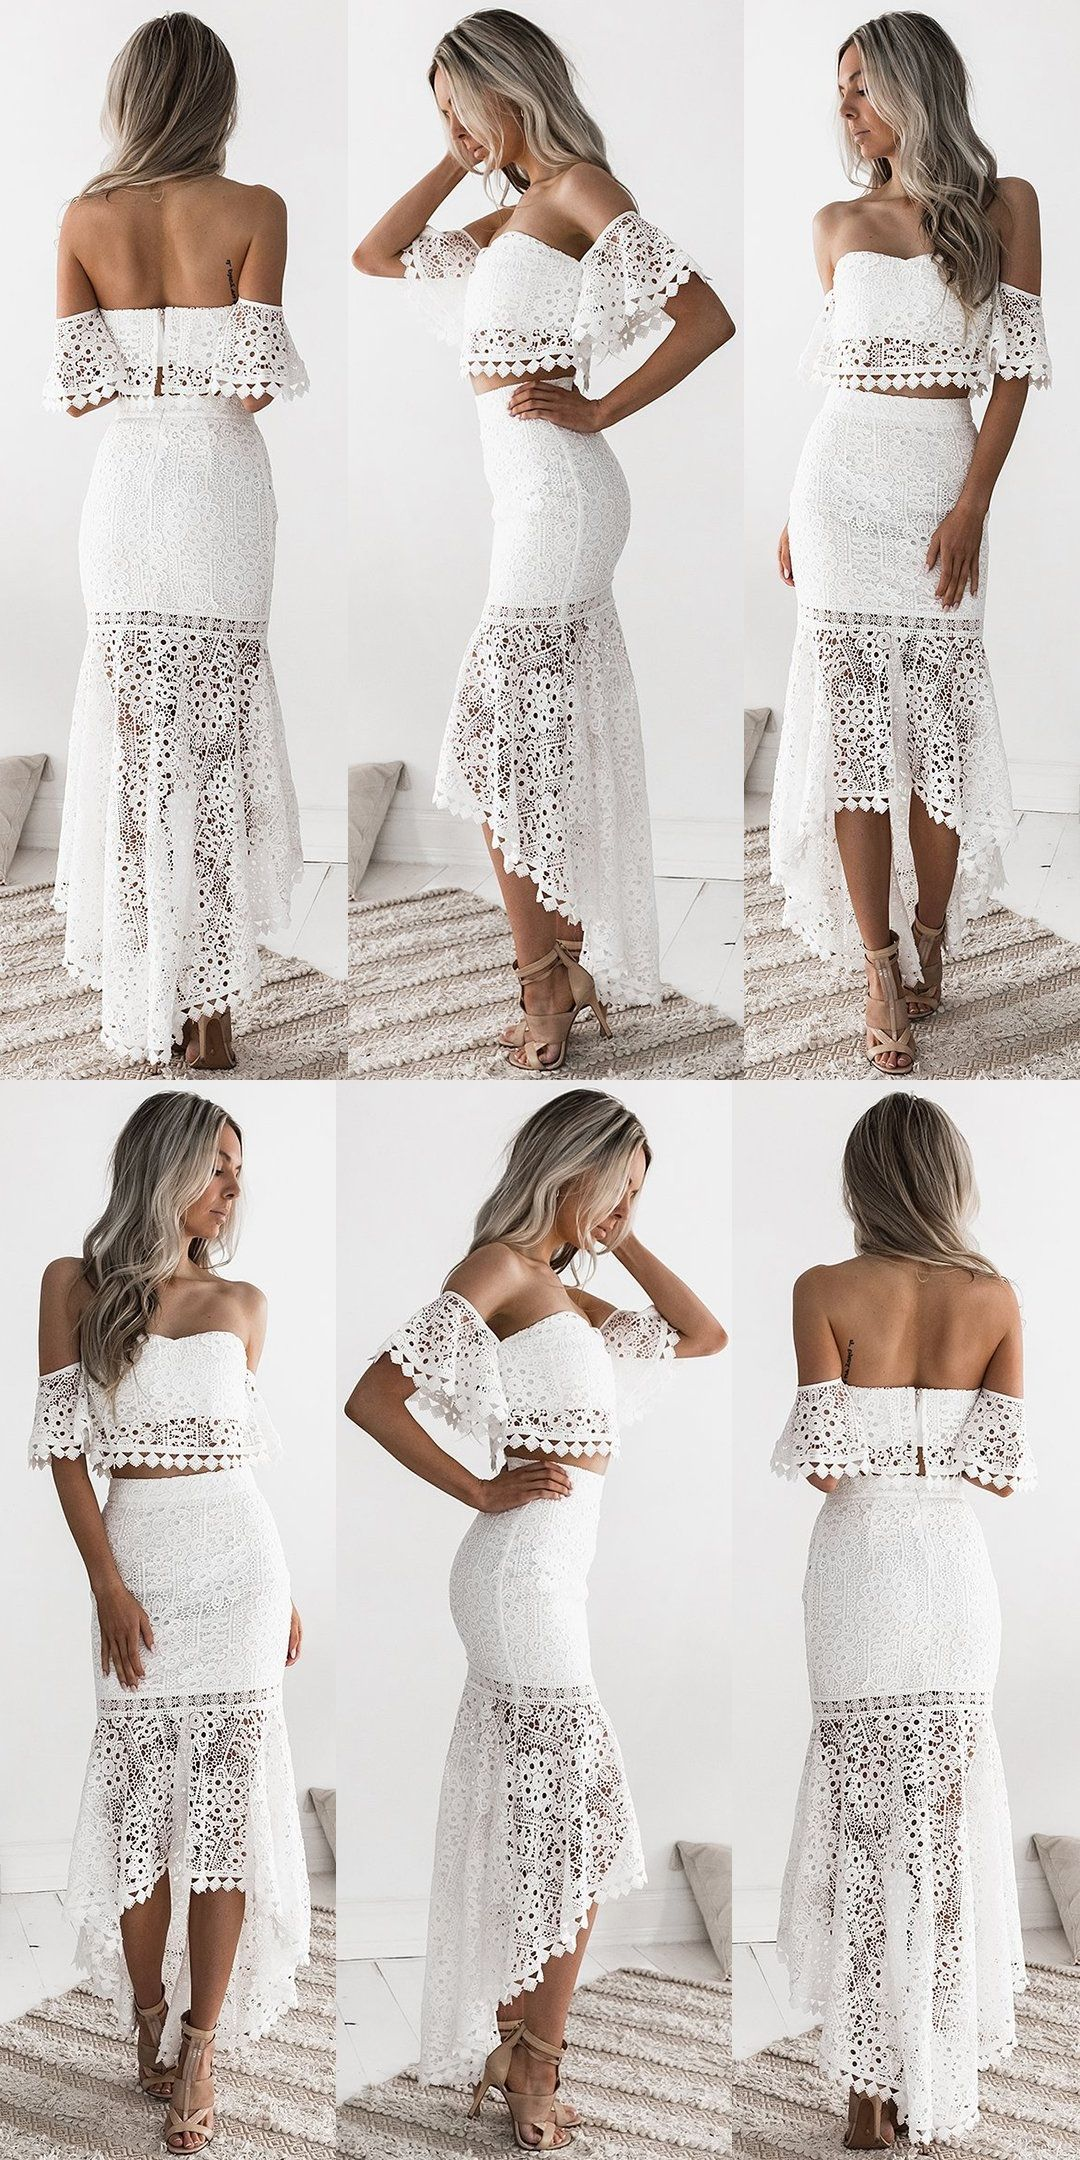 Two Piece White Lace Mermaid Prom Dresses Off The Shoulder Party Dresses For Teens Cheap High Lo Party Dress Classy Engagement Party Dresses Party Dress Teens [ 2160 x 1080 Pixel ]